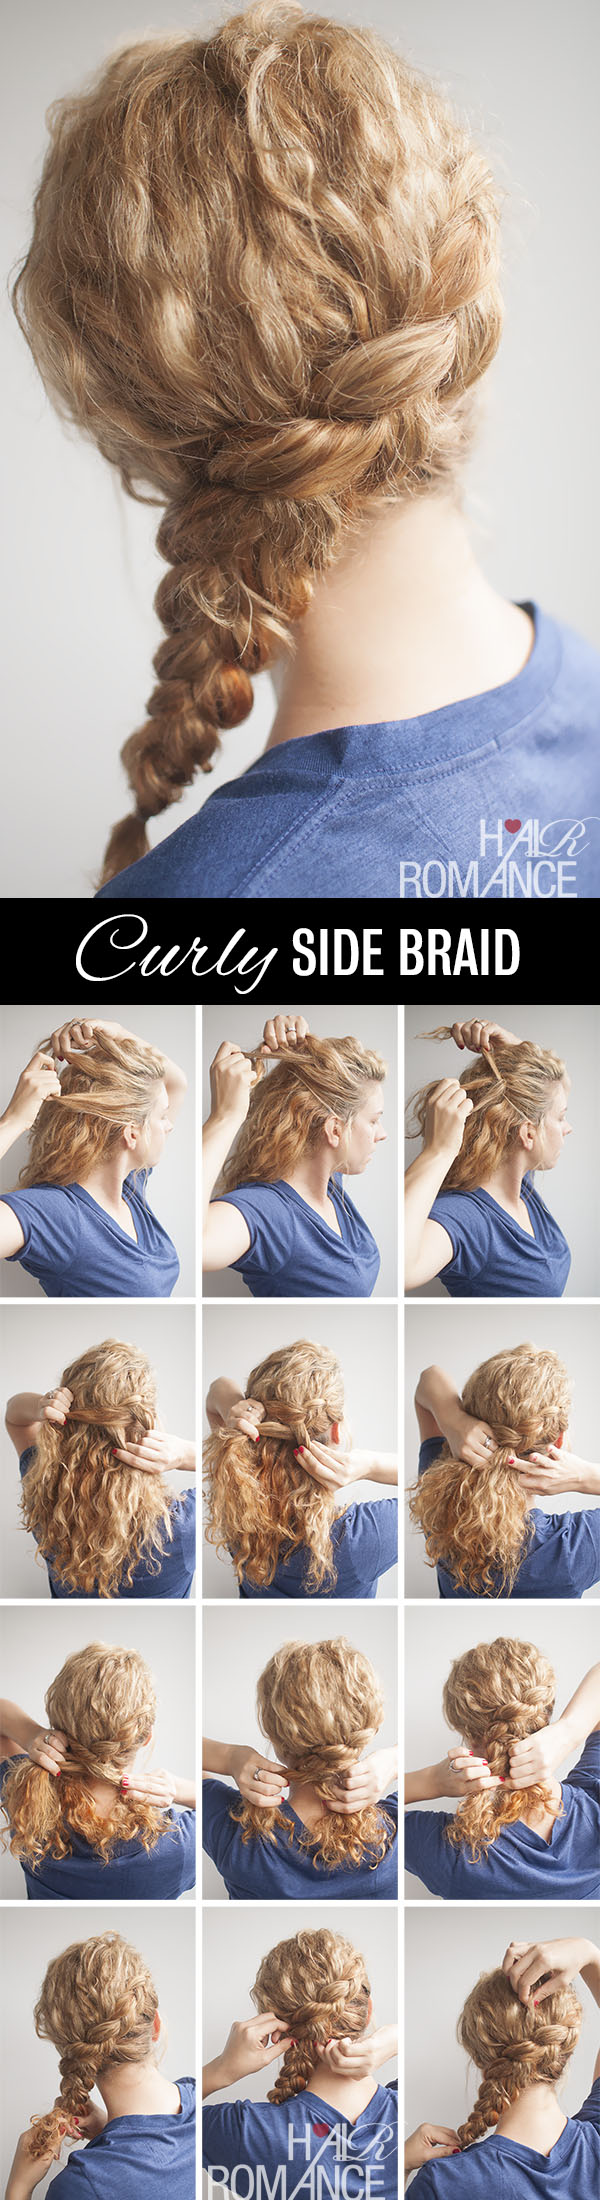 Hair Romance - Curly side braid hairstyle tutorial